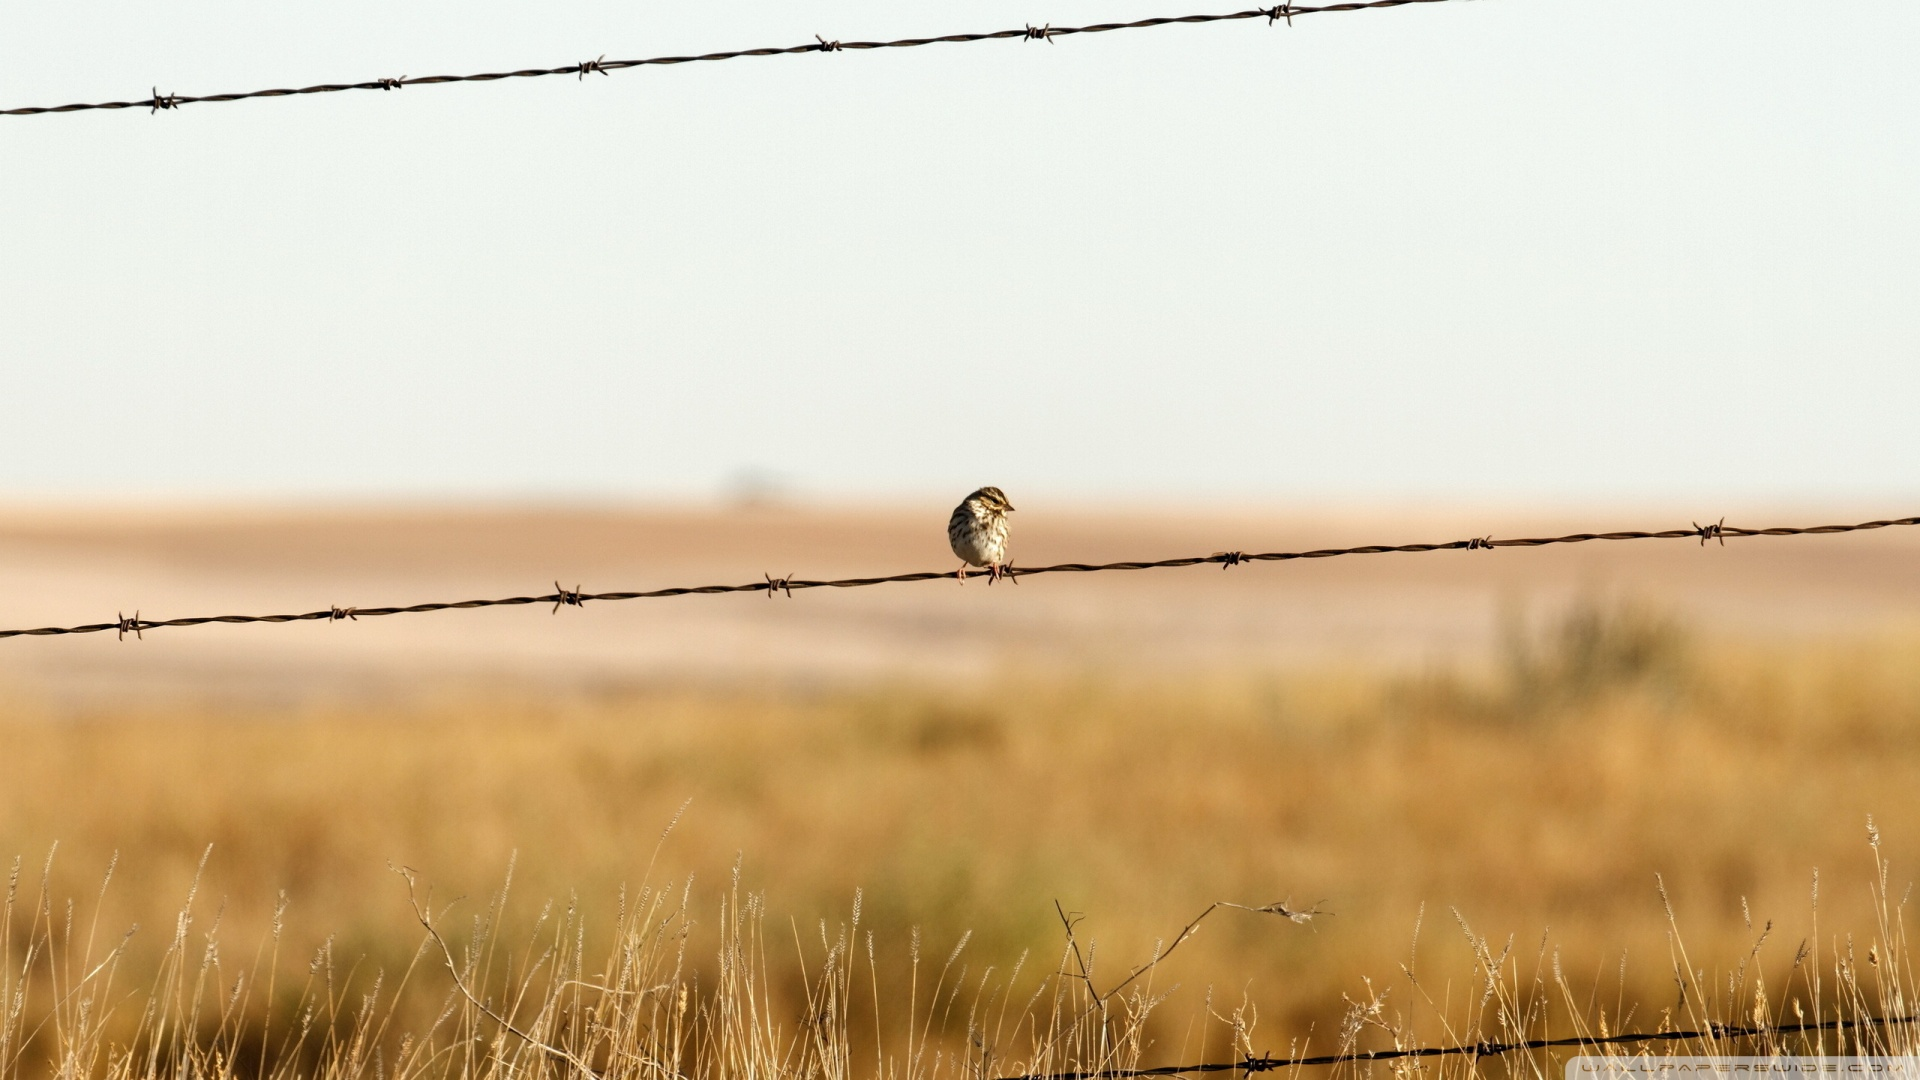 sparrow-on-barbed-wire-fence_00440660